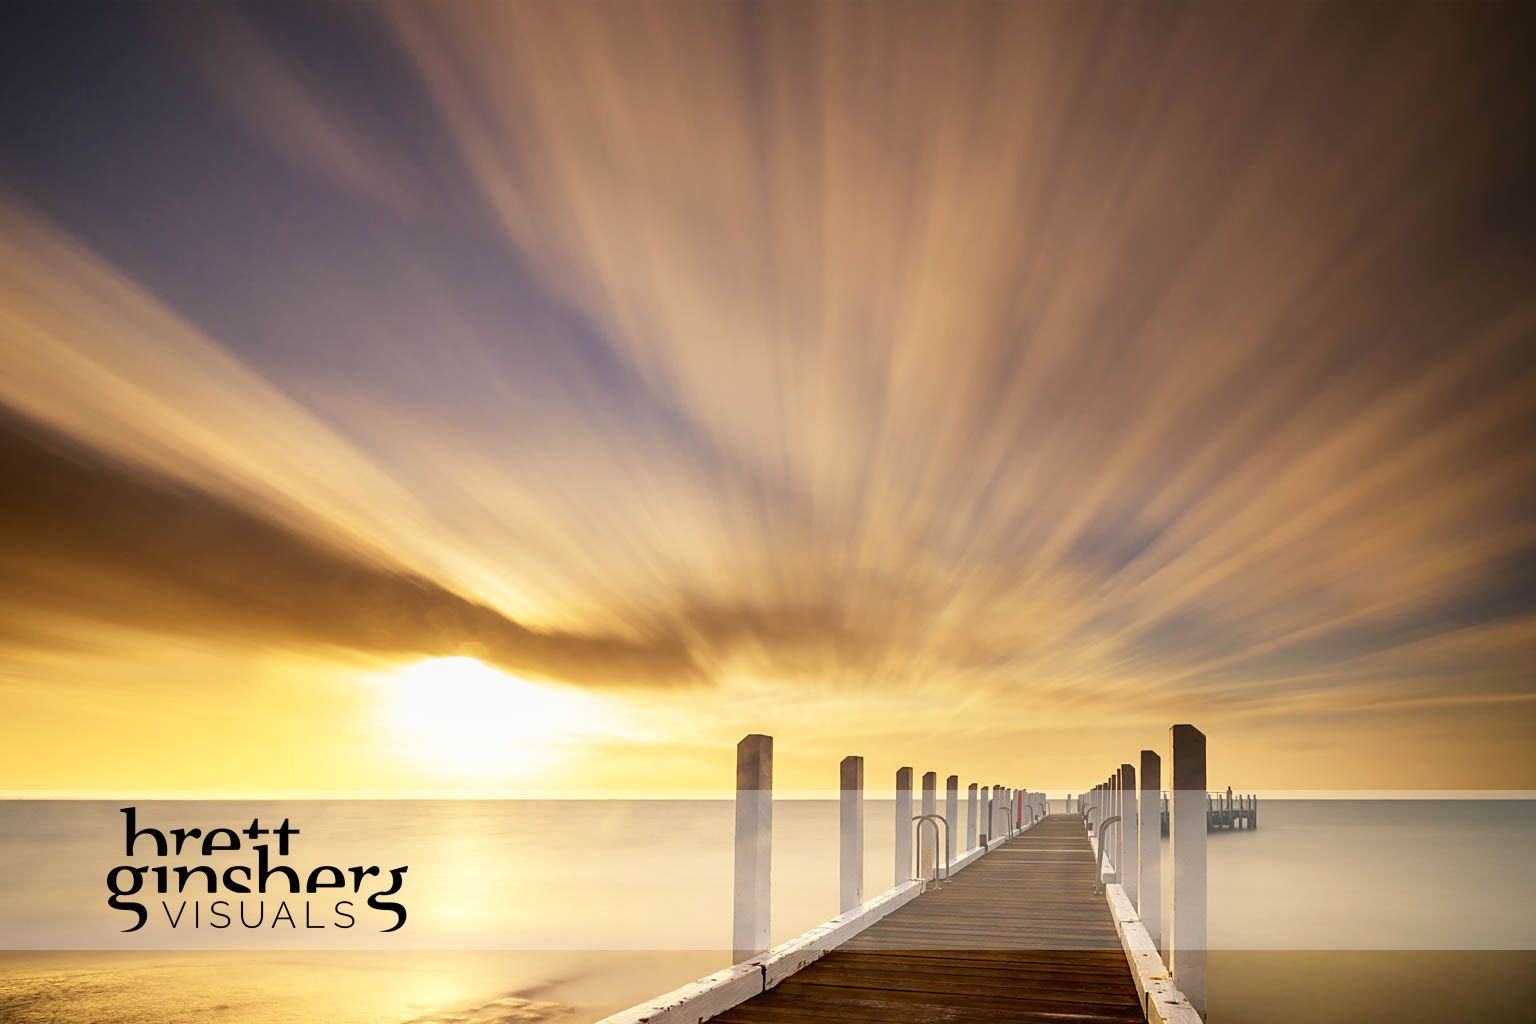 wall art of sunset with jetty